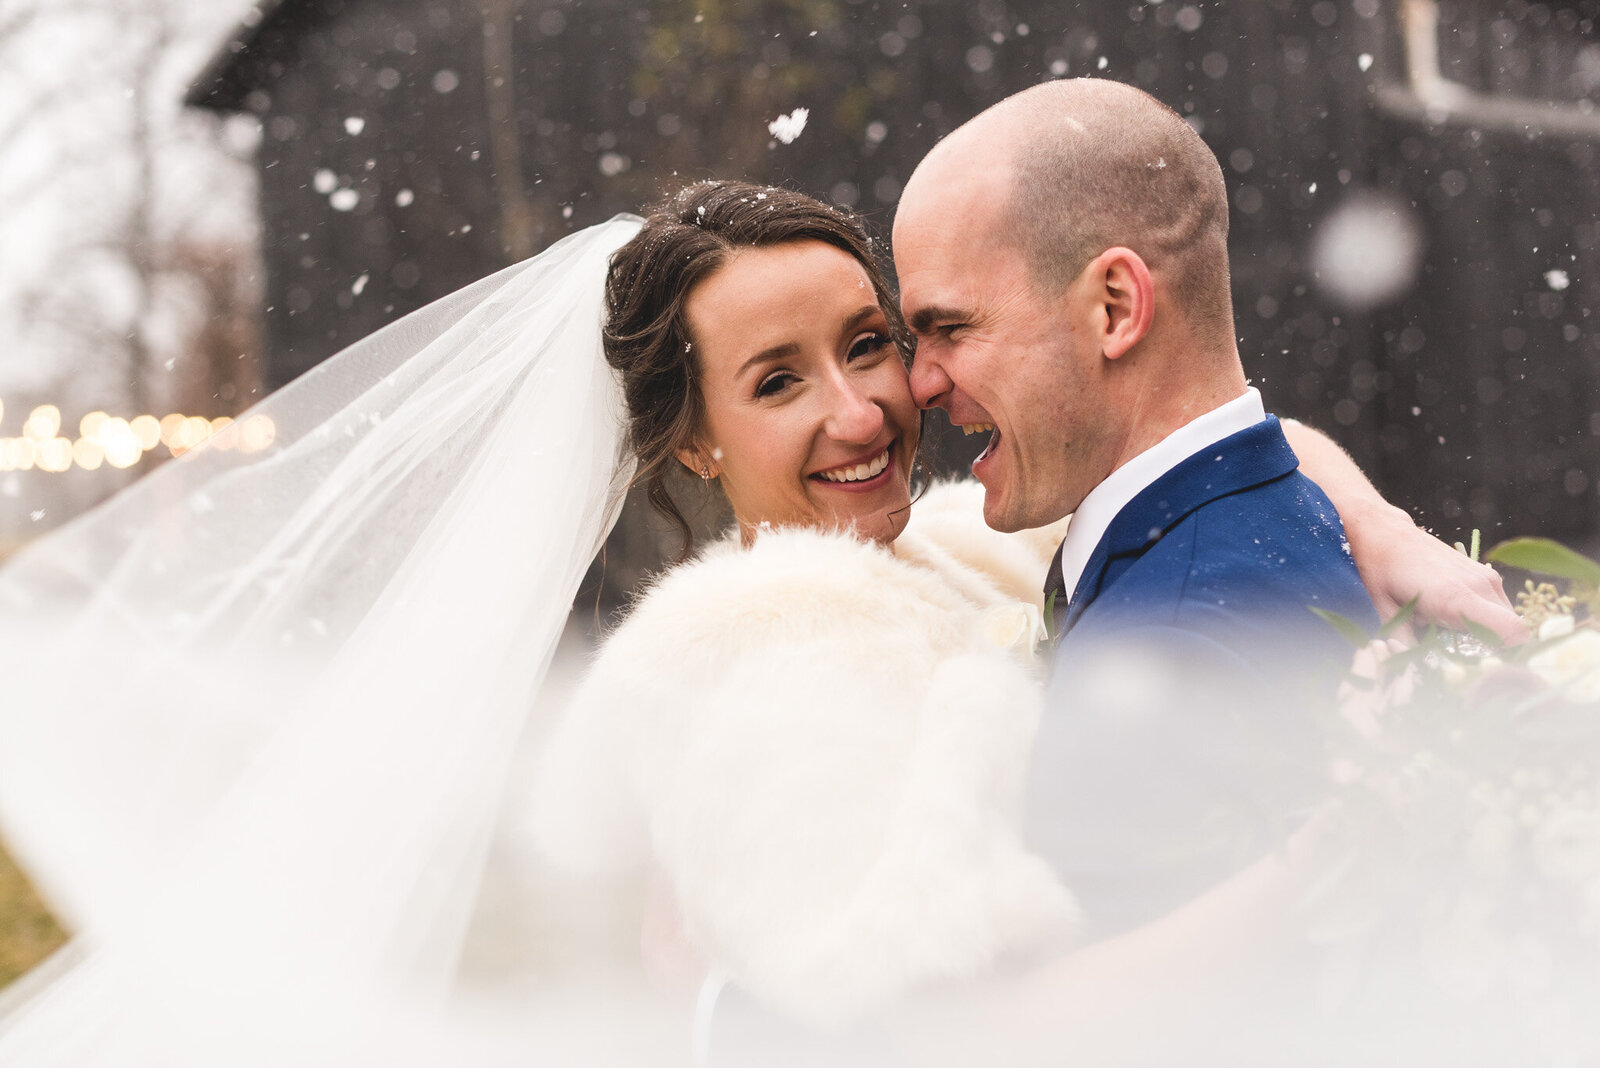 bride-and-groom-laughing-in-snow-at-barn-wedding-jorgensen-ohio